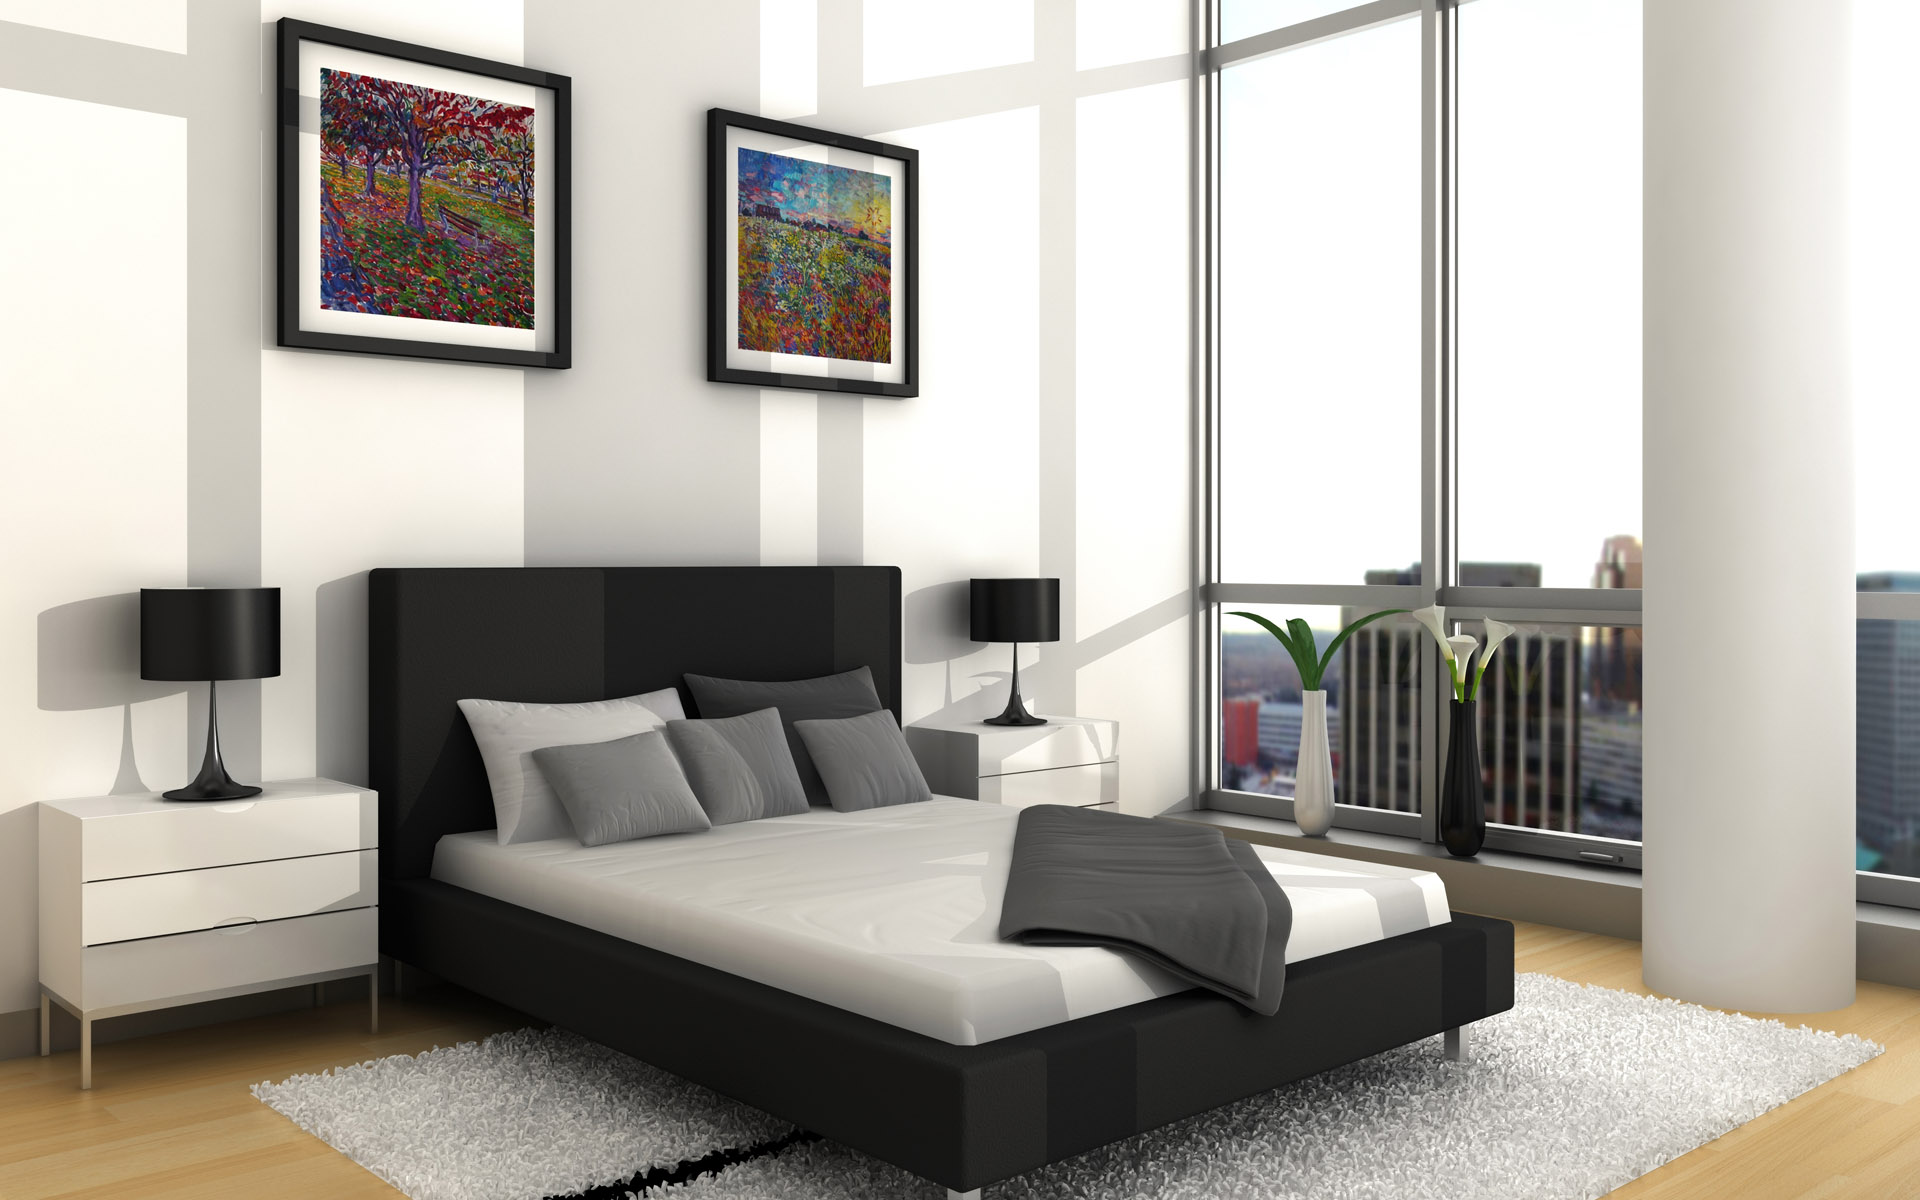 """It doesn't have to be """"over the top."""" Select a bed that fits your style and is comfortable. (Photo Credit: capcbc.org)"""